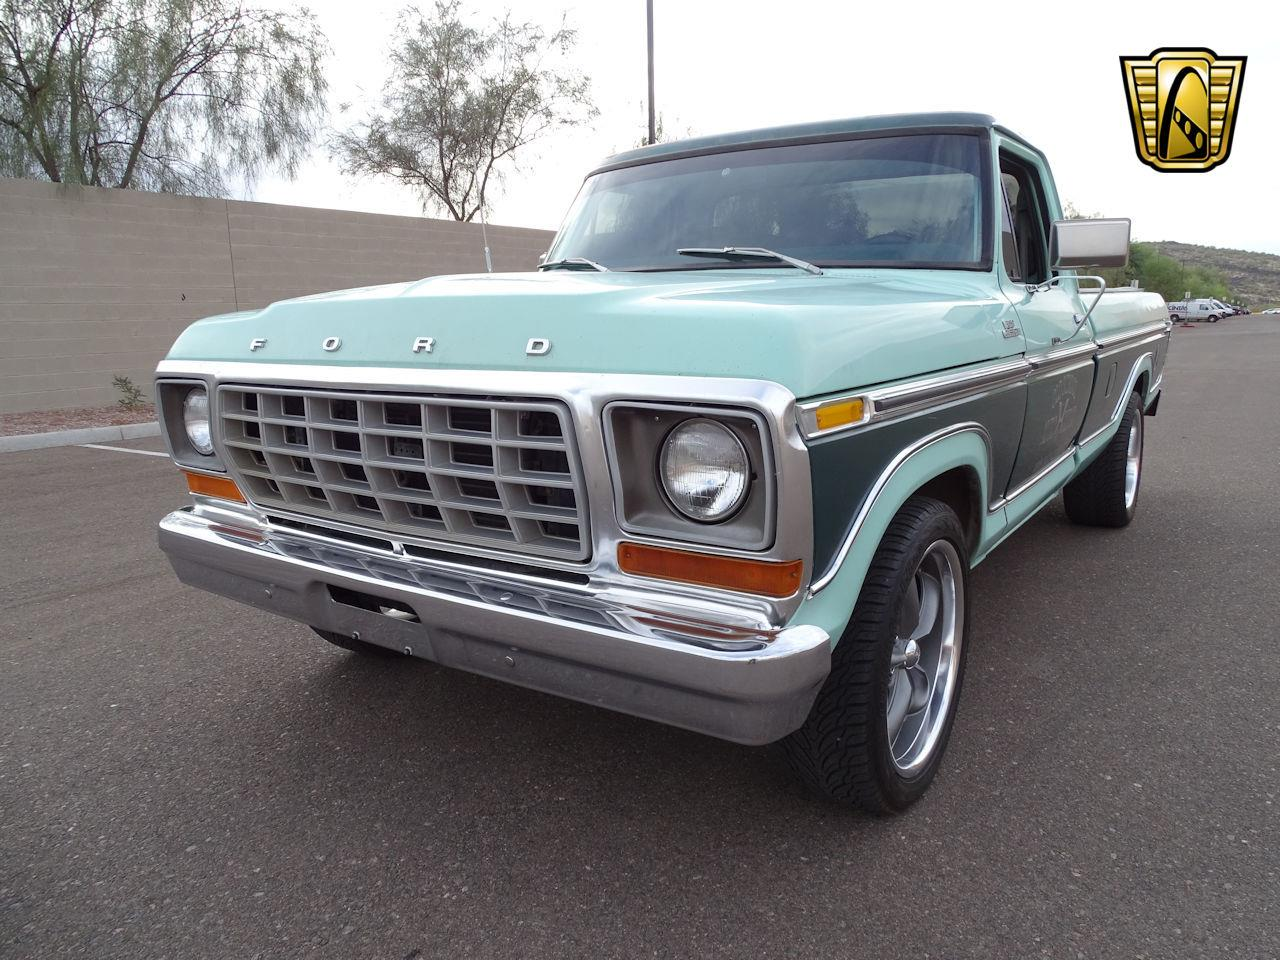 Large Picture of 1978 Ford F150 - $17,995.00 Offered by Gateway Classic Cars - Scottsdale - MEMV